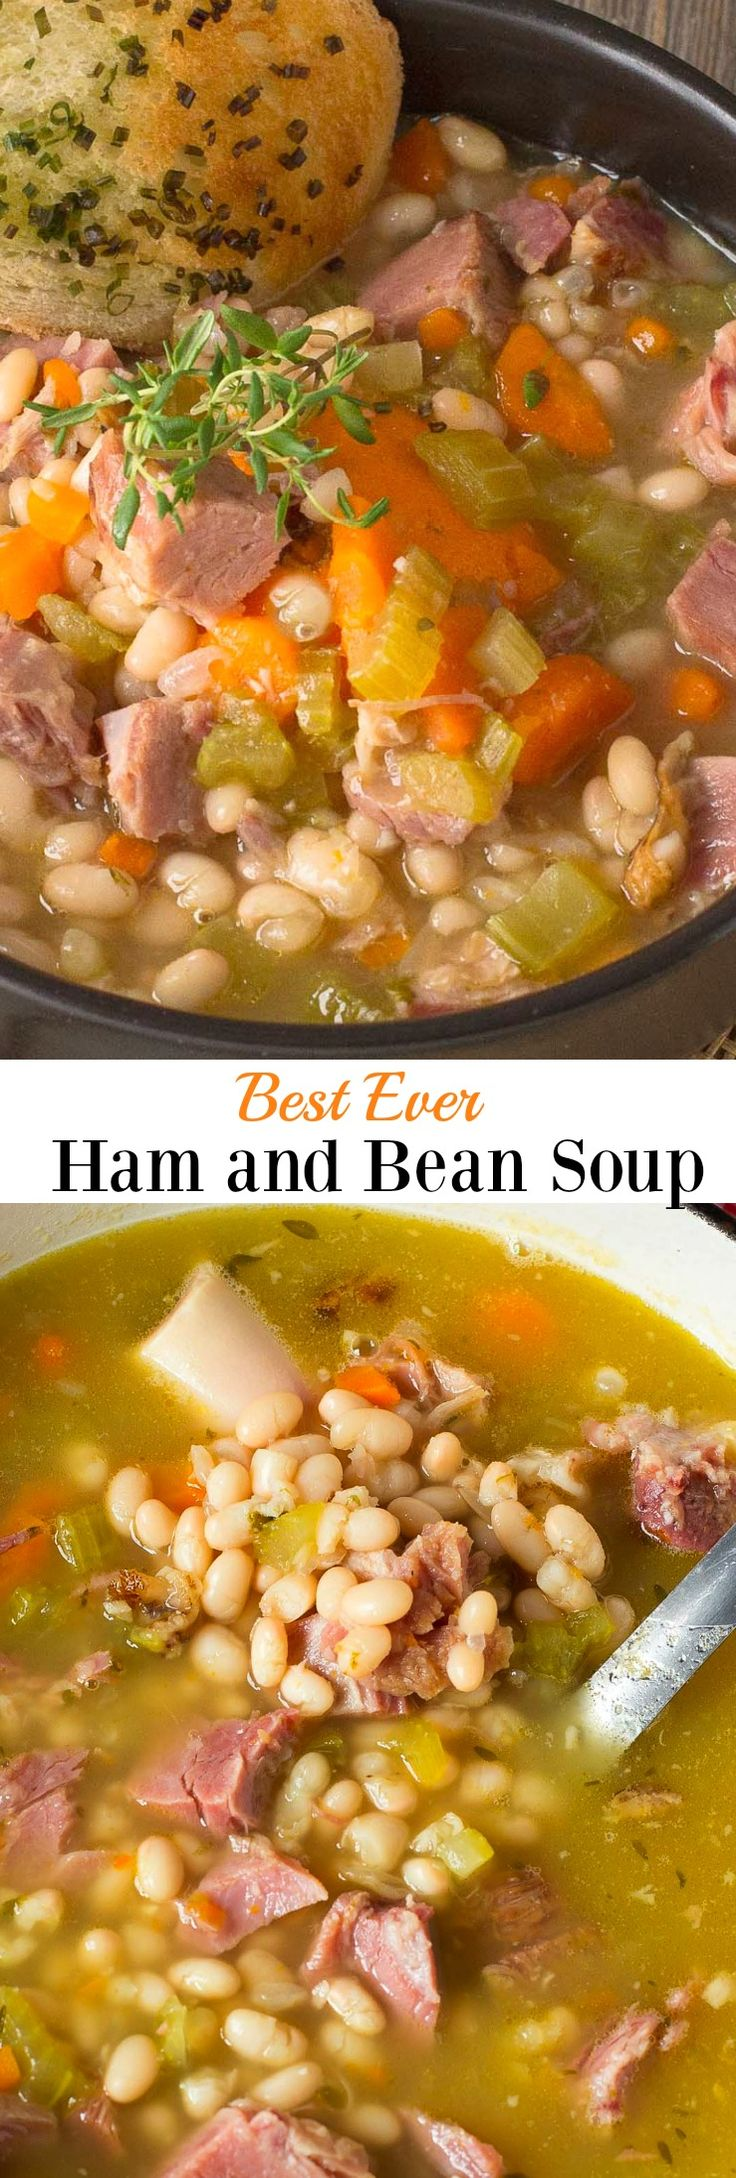 A BEST EVER recipe for Ham and Bean Soup! An all-time favourite recipe for leftover ham, so hearty and delicious.